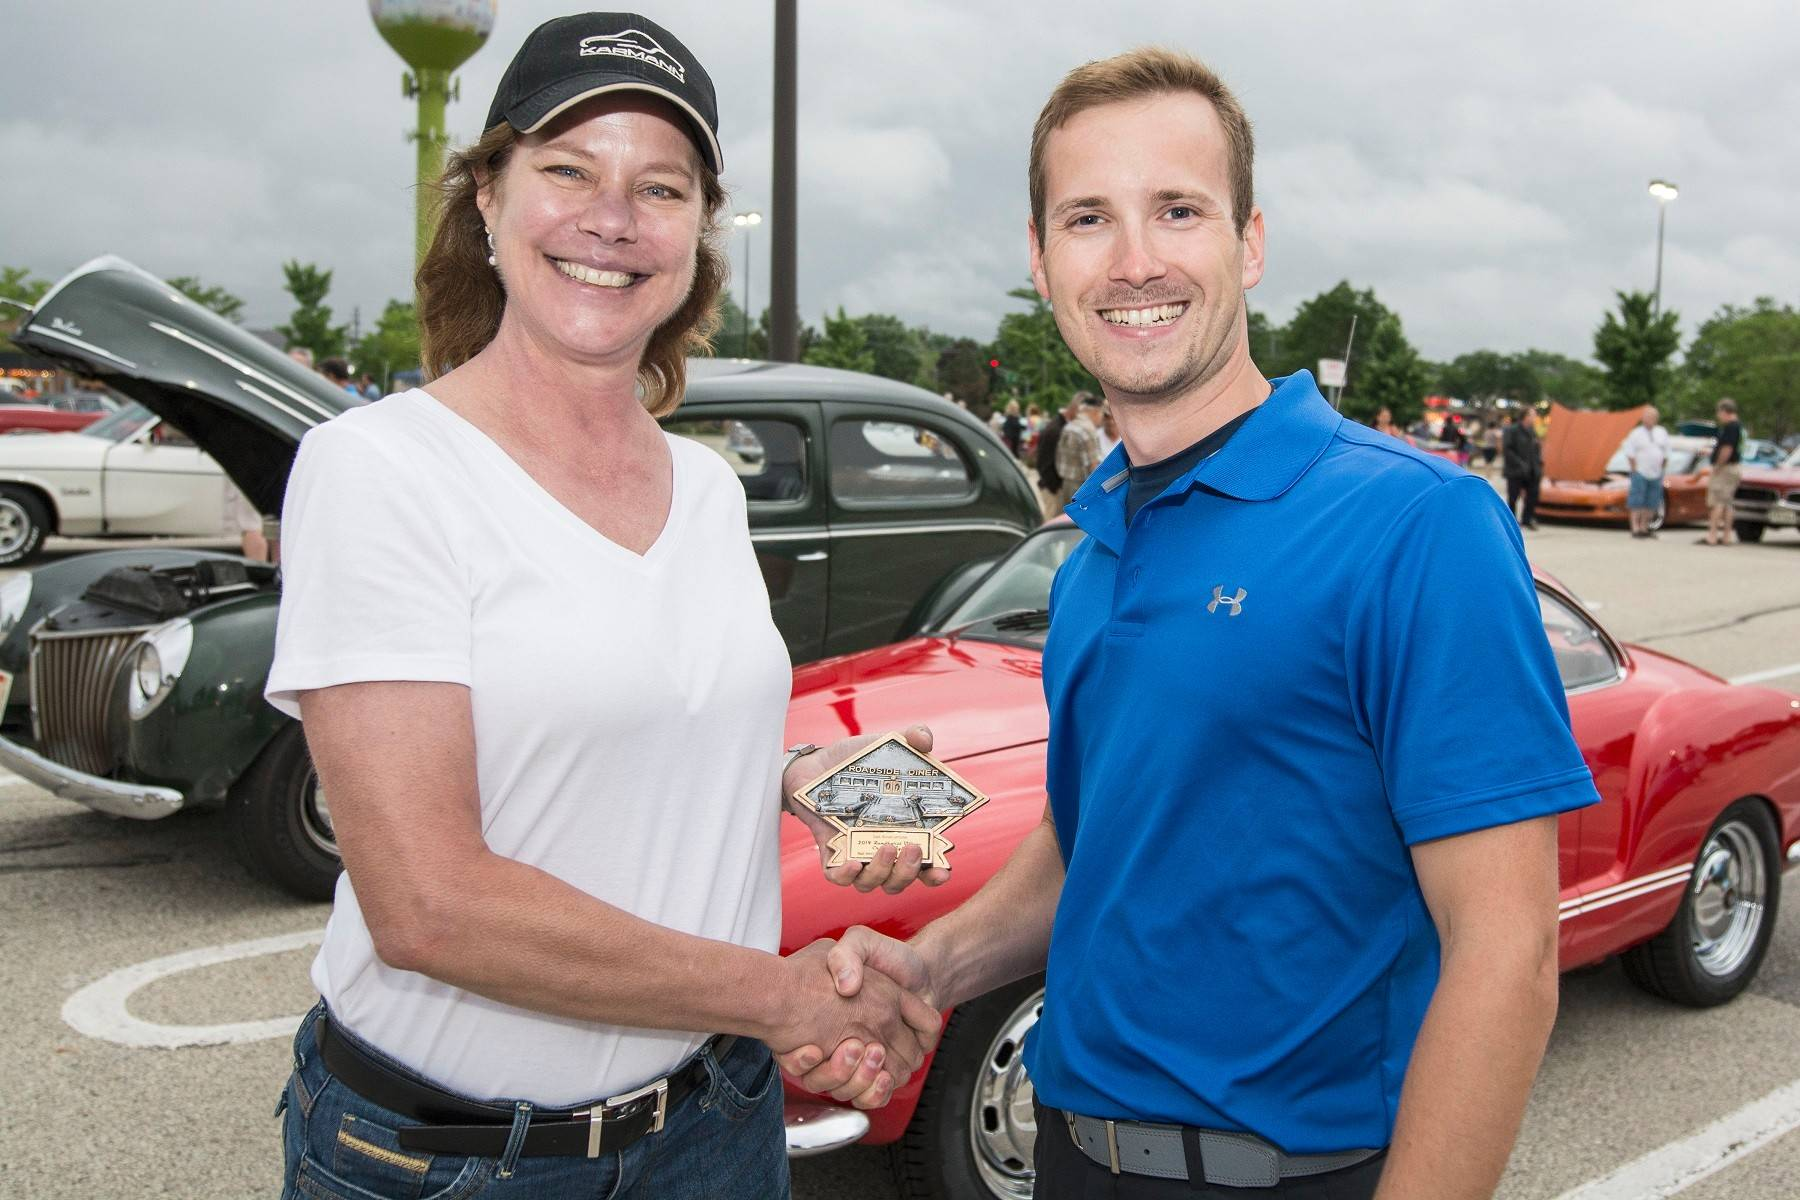 Gail Goldsmith of Palatine receives the Classic Car Champion award from Matthew Avery.